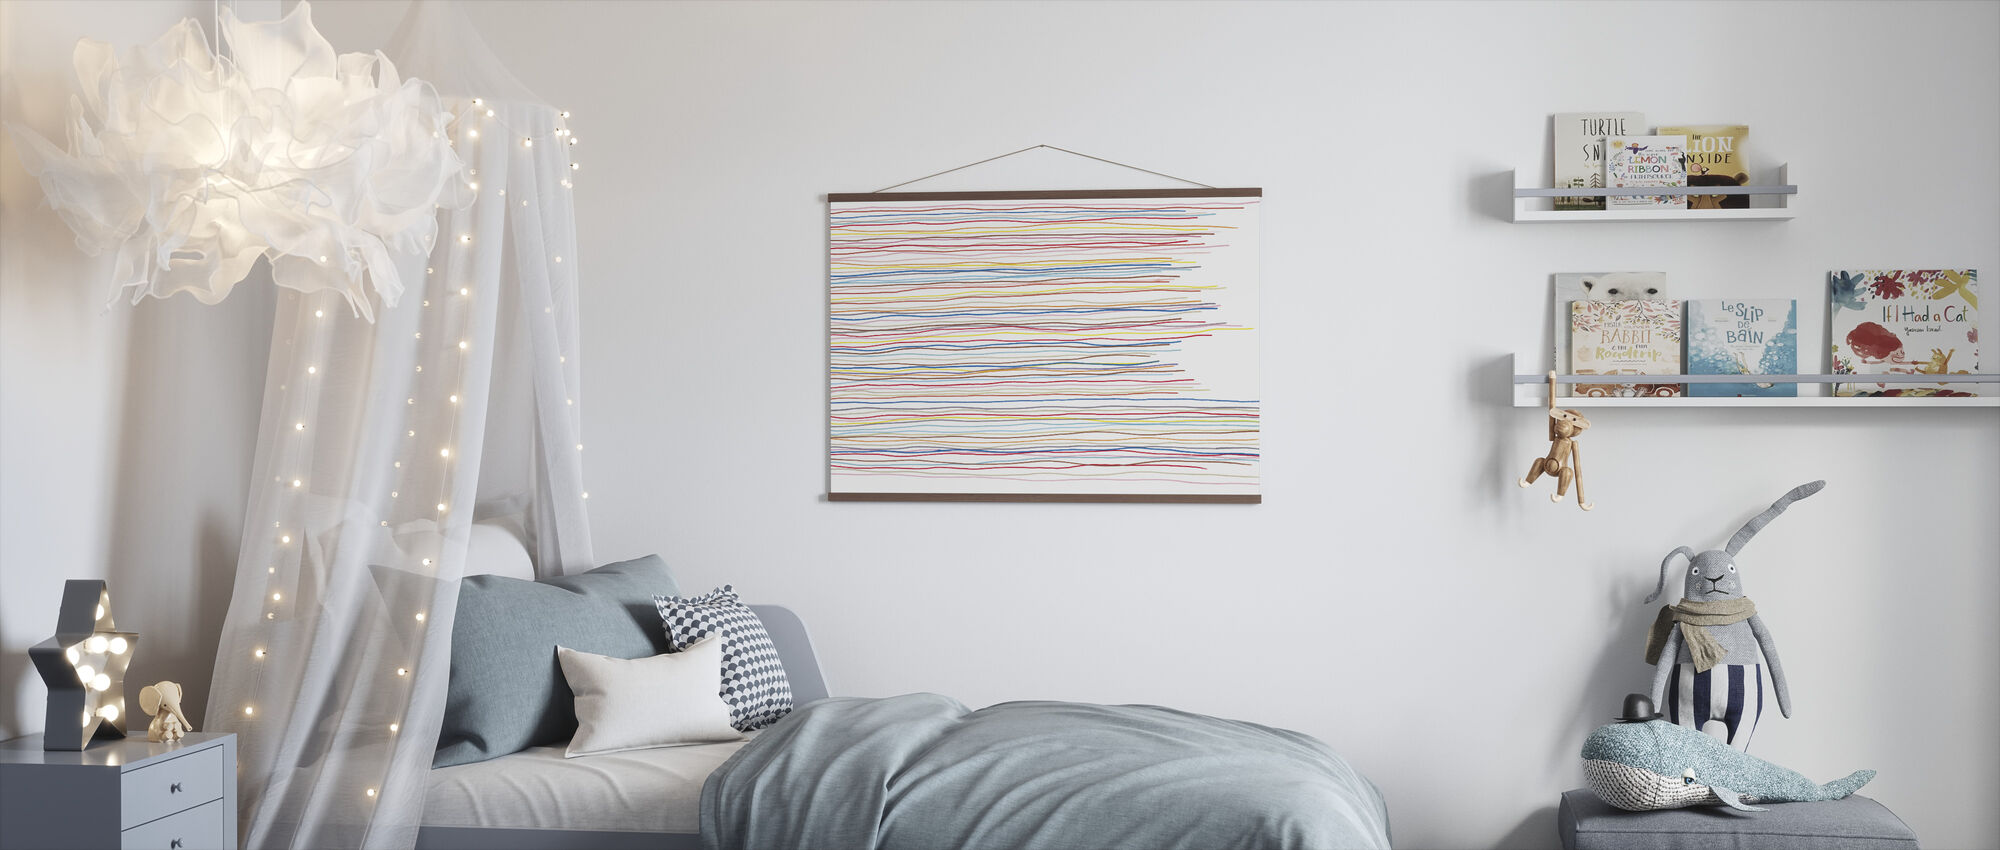 Variegated Stripes - Poster - Kids Room